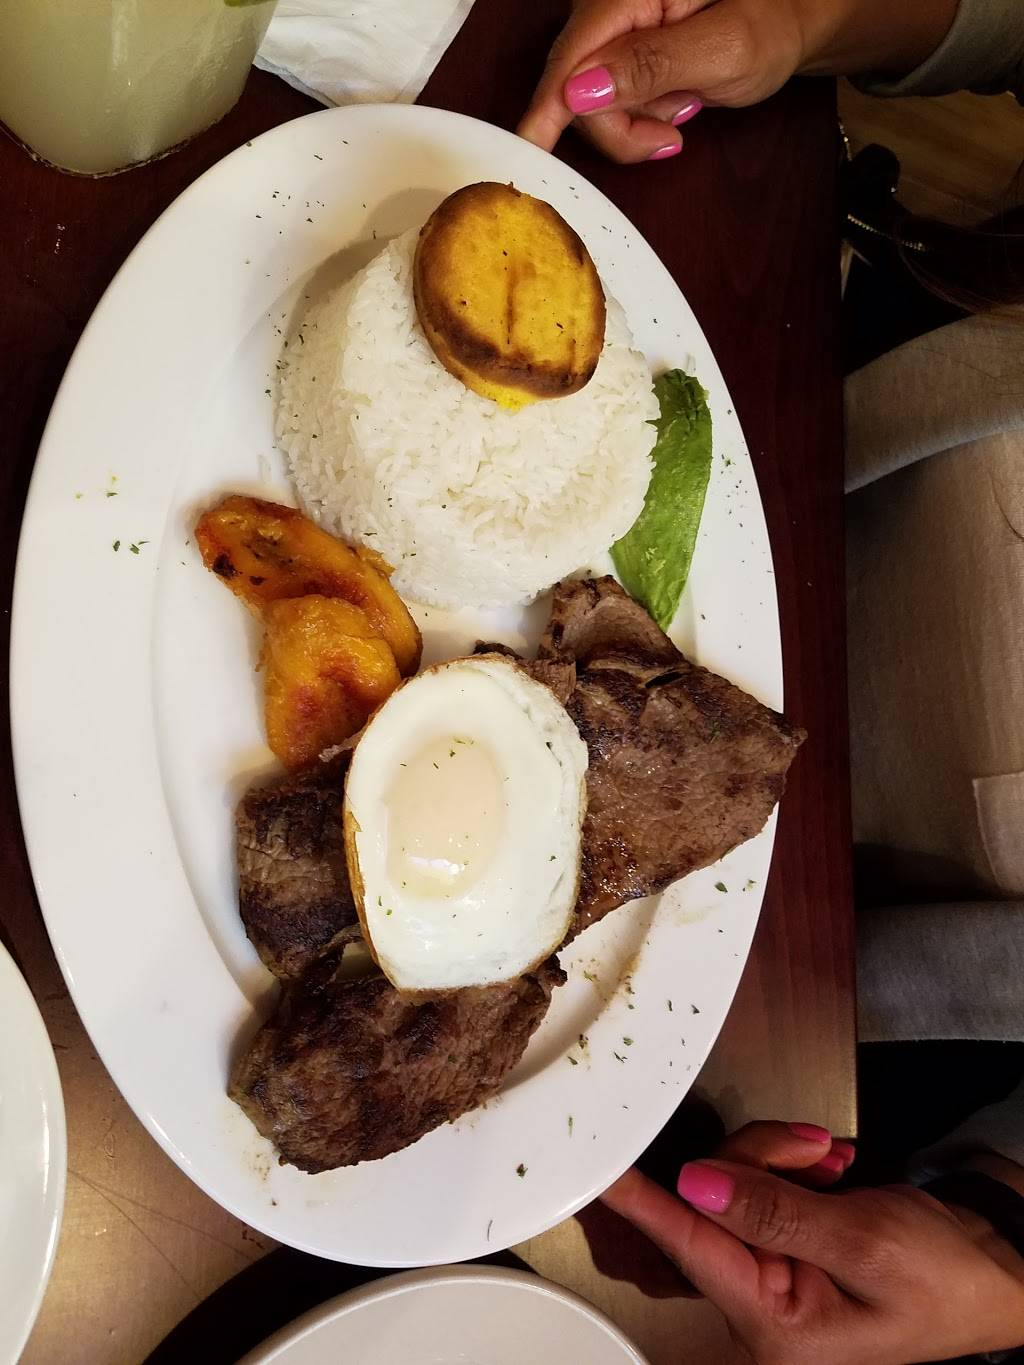 Noches de Colombia | cafe | 1309 Paterson Plank Rd, Secaucus, NJ 07094, USA | 5512577188 OR +1 551-257-7188